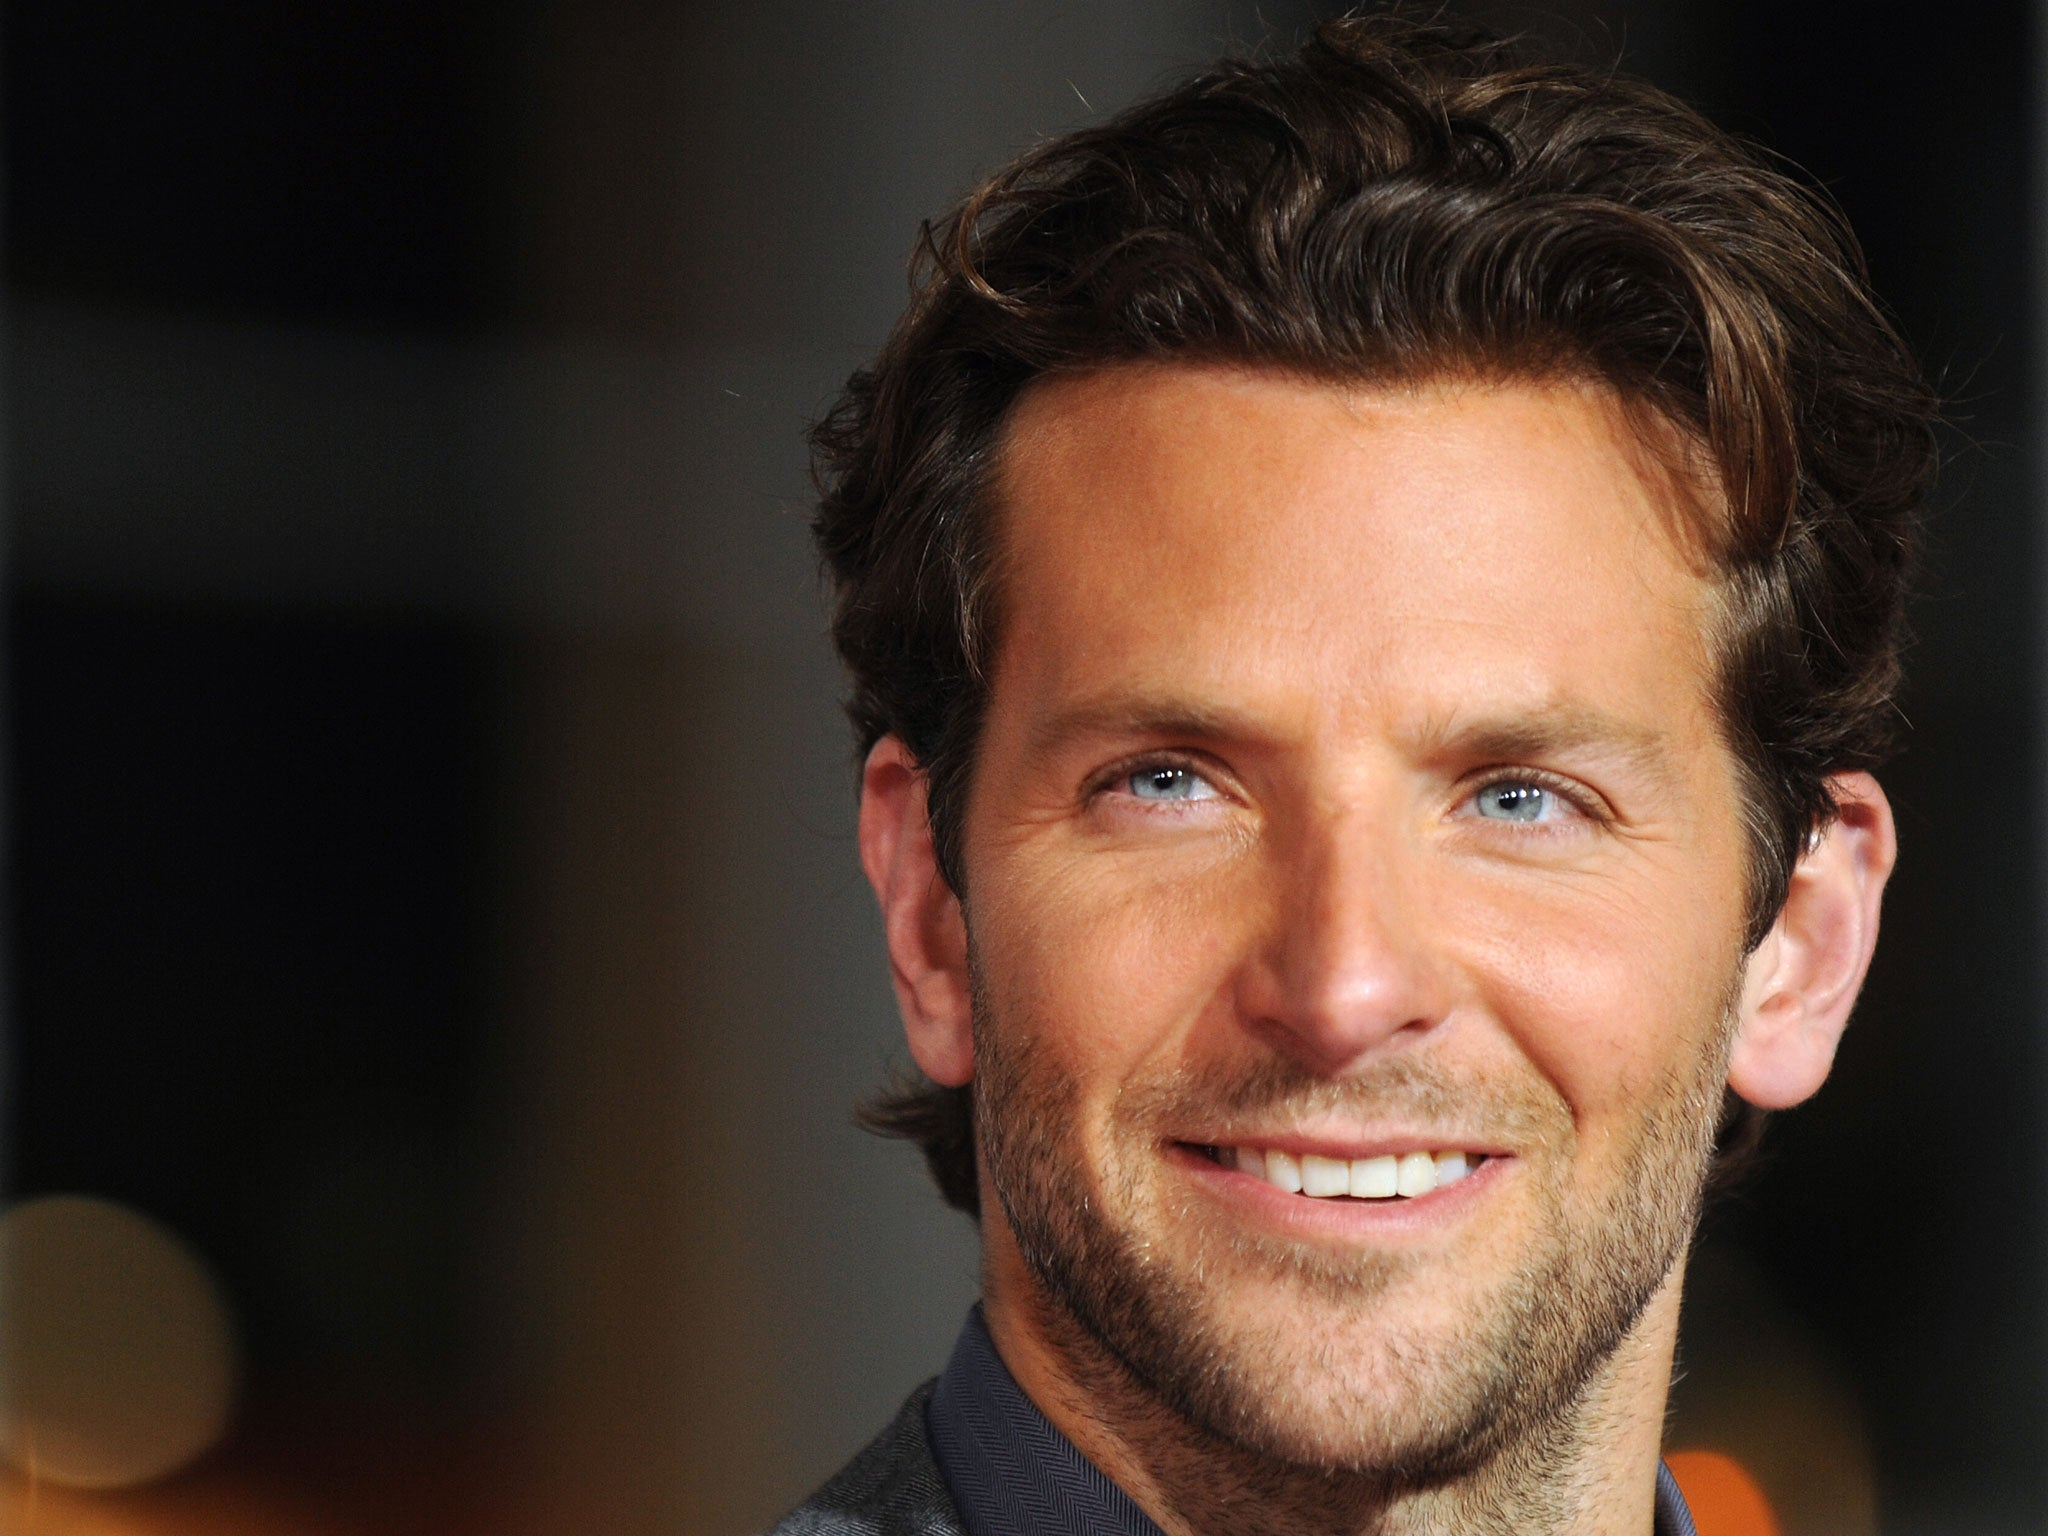 bradley cooper dating 2014 12 worst hollywood lovers may 30, 2014 photo credit: gettyimages advertisement 8) bradley cooper with his piercing blue eyes and blinding smile.